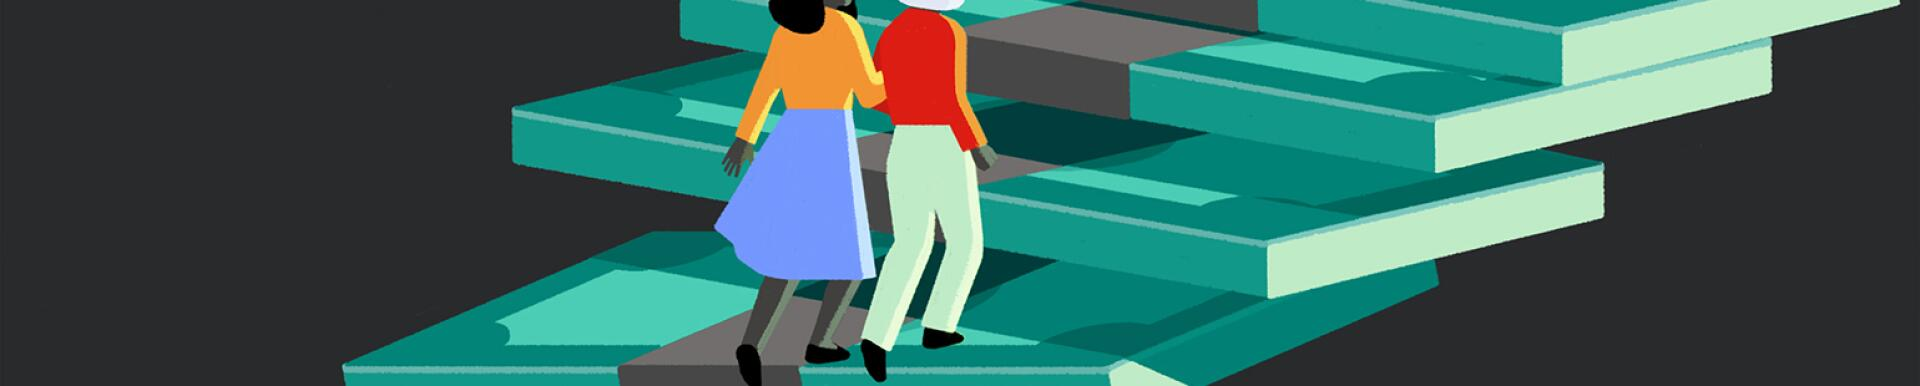 illustration_of_daughter_helping_mother_go_up_money_stairs_financial_help_by_maria_hergueta_1540x600.jpg